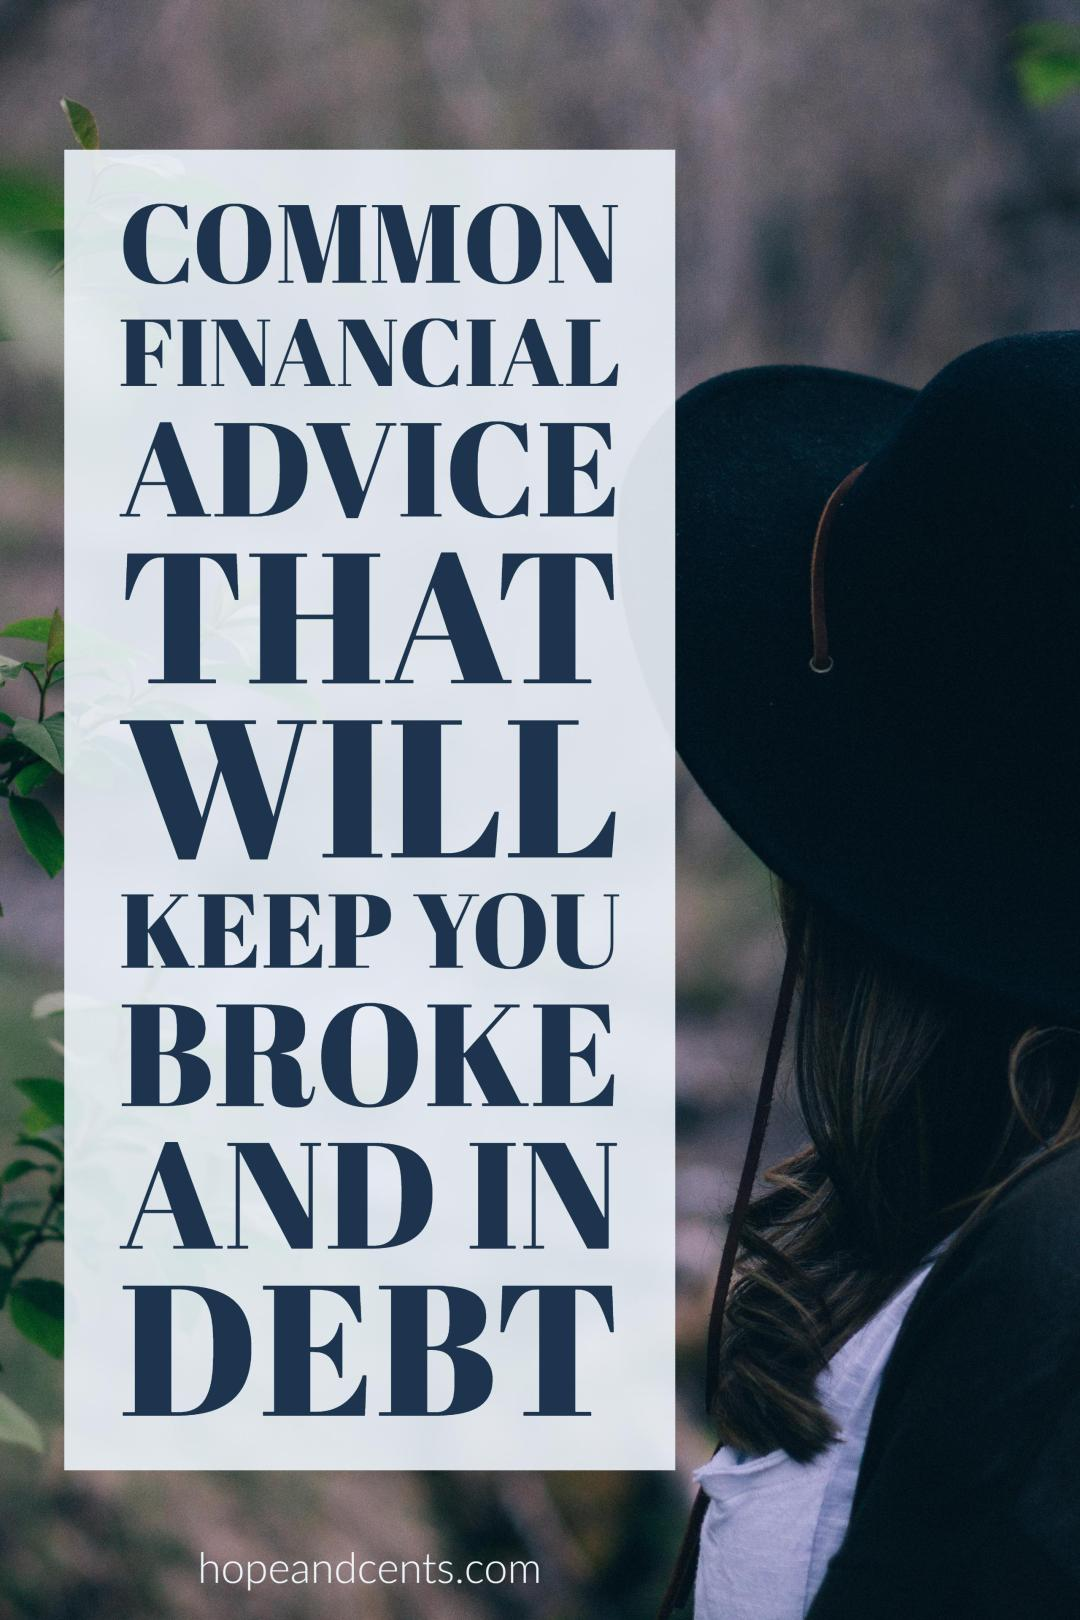 Do your friends and family share financial advice? Unfortunately, some of this advice will lead you to becoming broke and in debt.